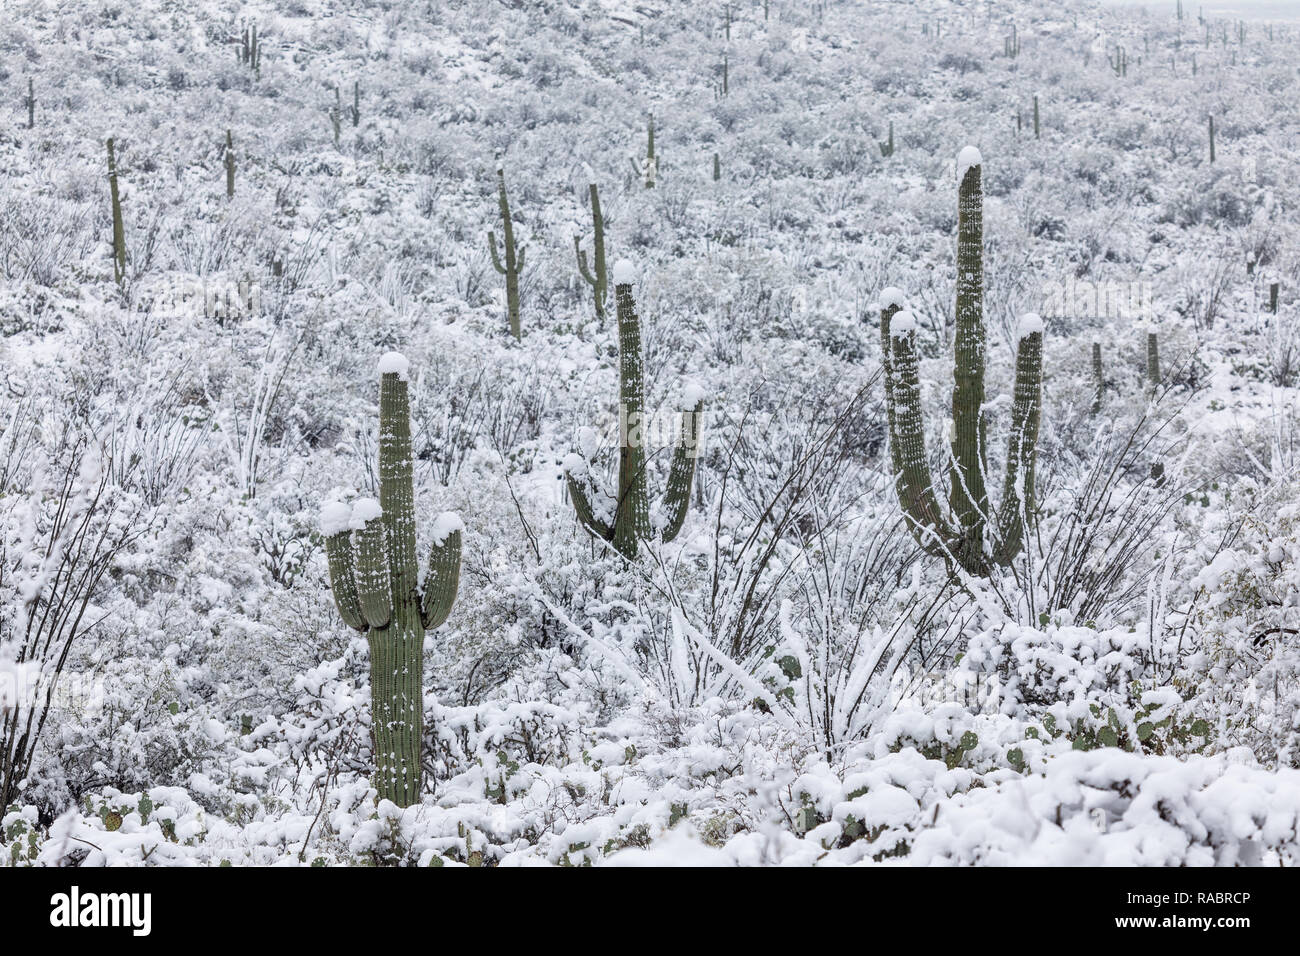 Tucson, USA. 2nd Jan, 2019. A cold winter storm brought a rare snowfall to the lower elevations of the Sonoran Desert at Saguaro National Park in Tucson, USA. Credit: John Sirlin/Alamy Live News. - Stock Image